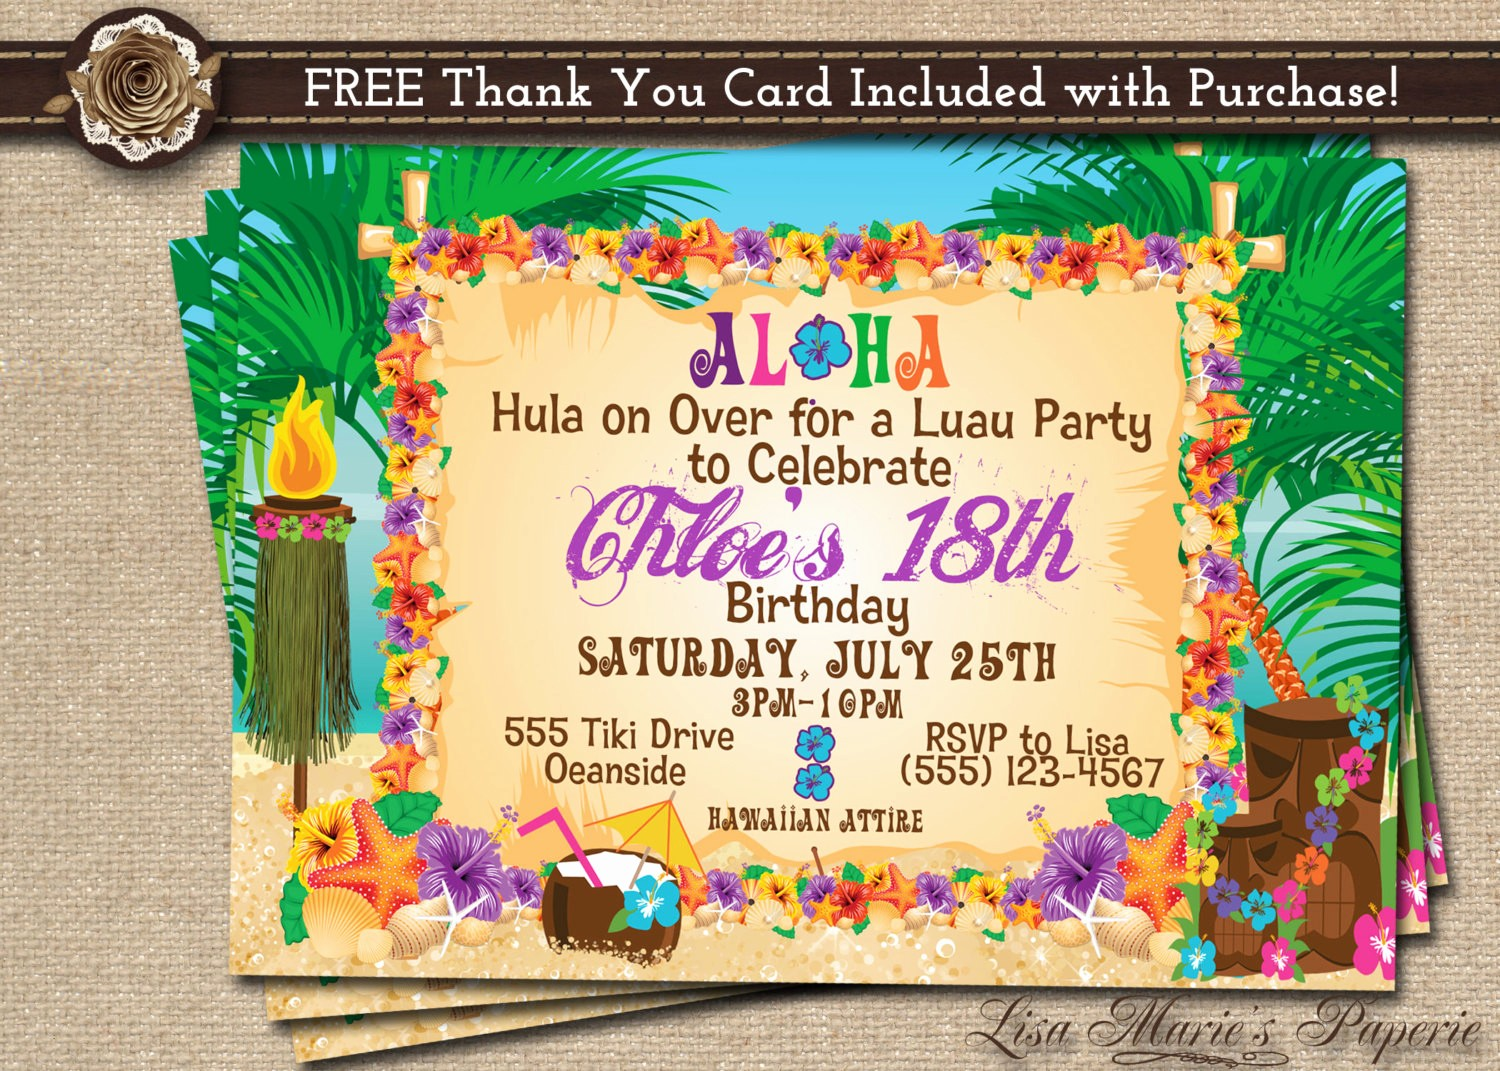 Hawaiian theme Party Invitations Printable Fresh Hawaiian Party Invitation Luau Birthday Invitation Luau